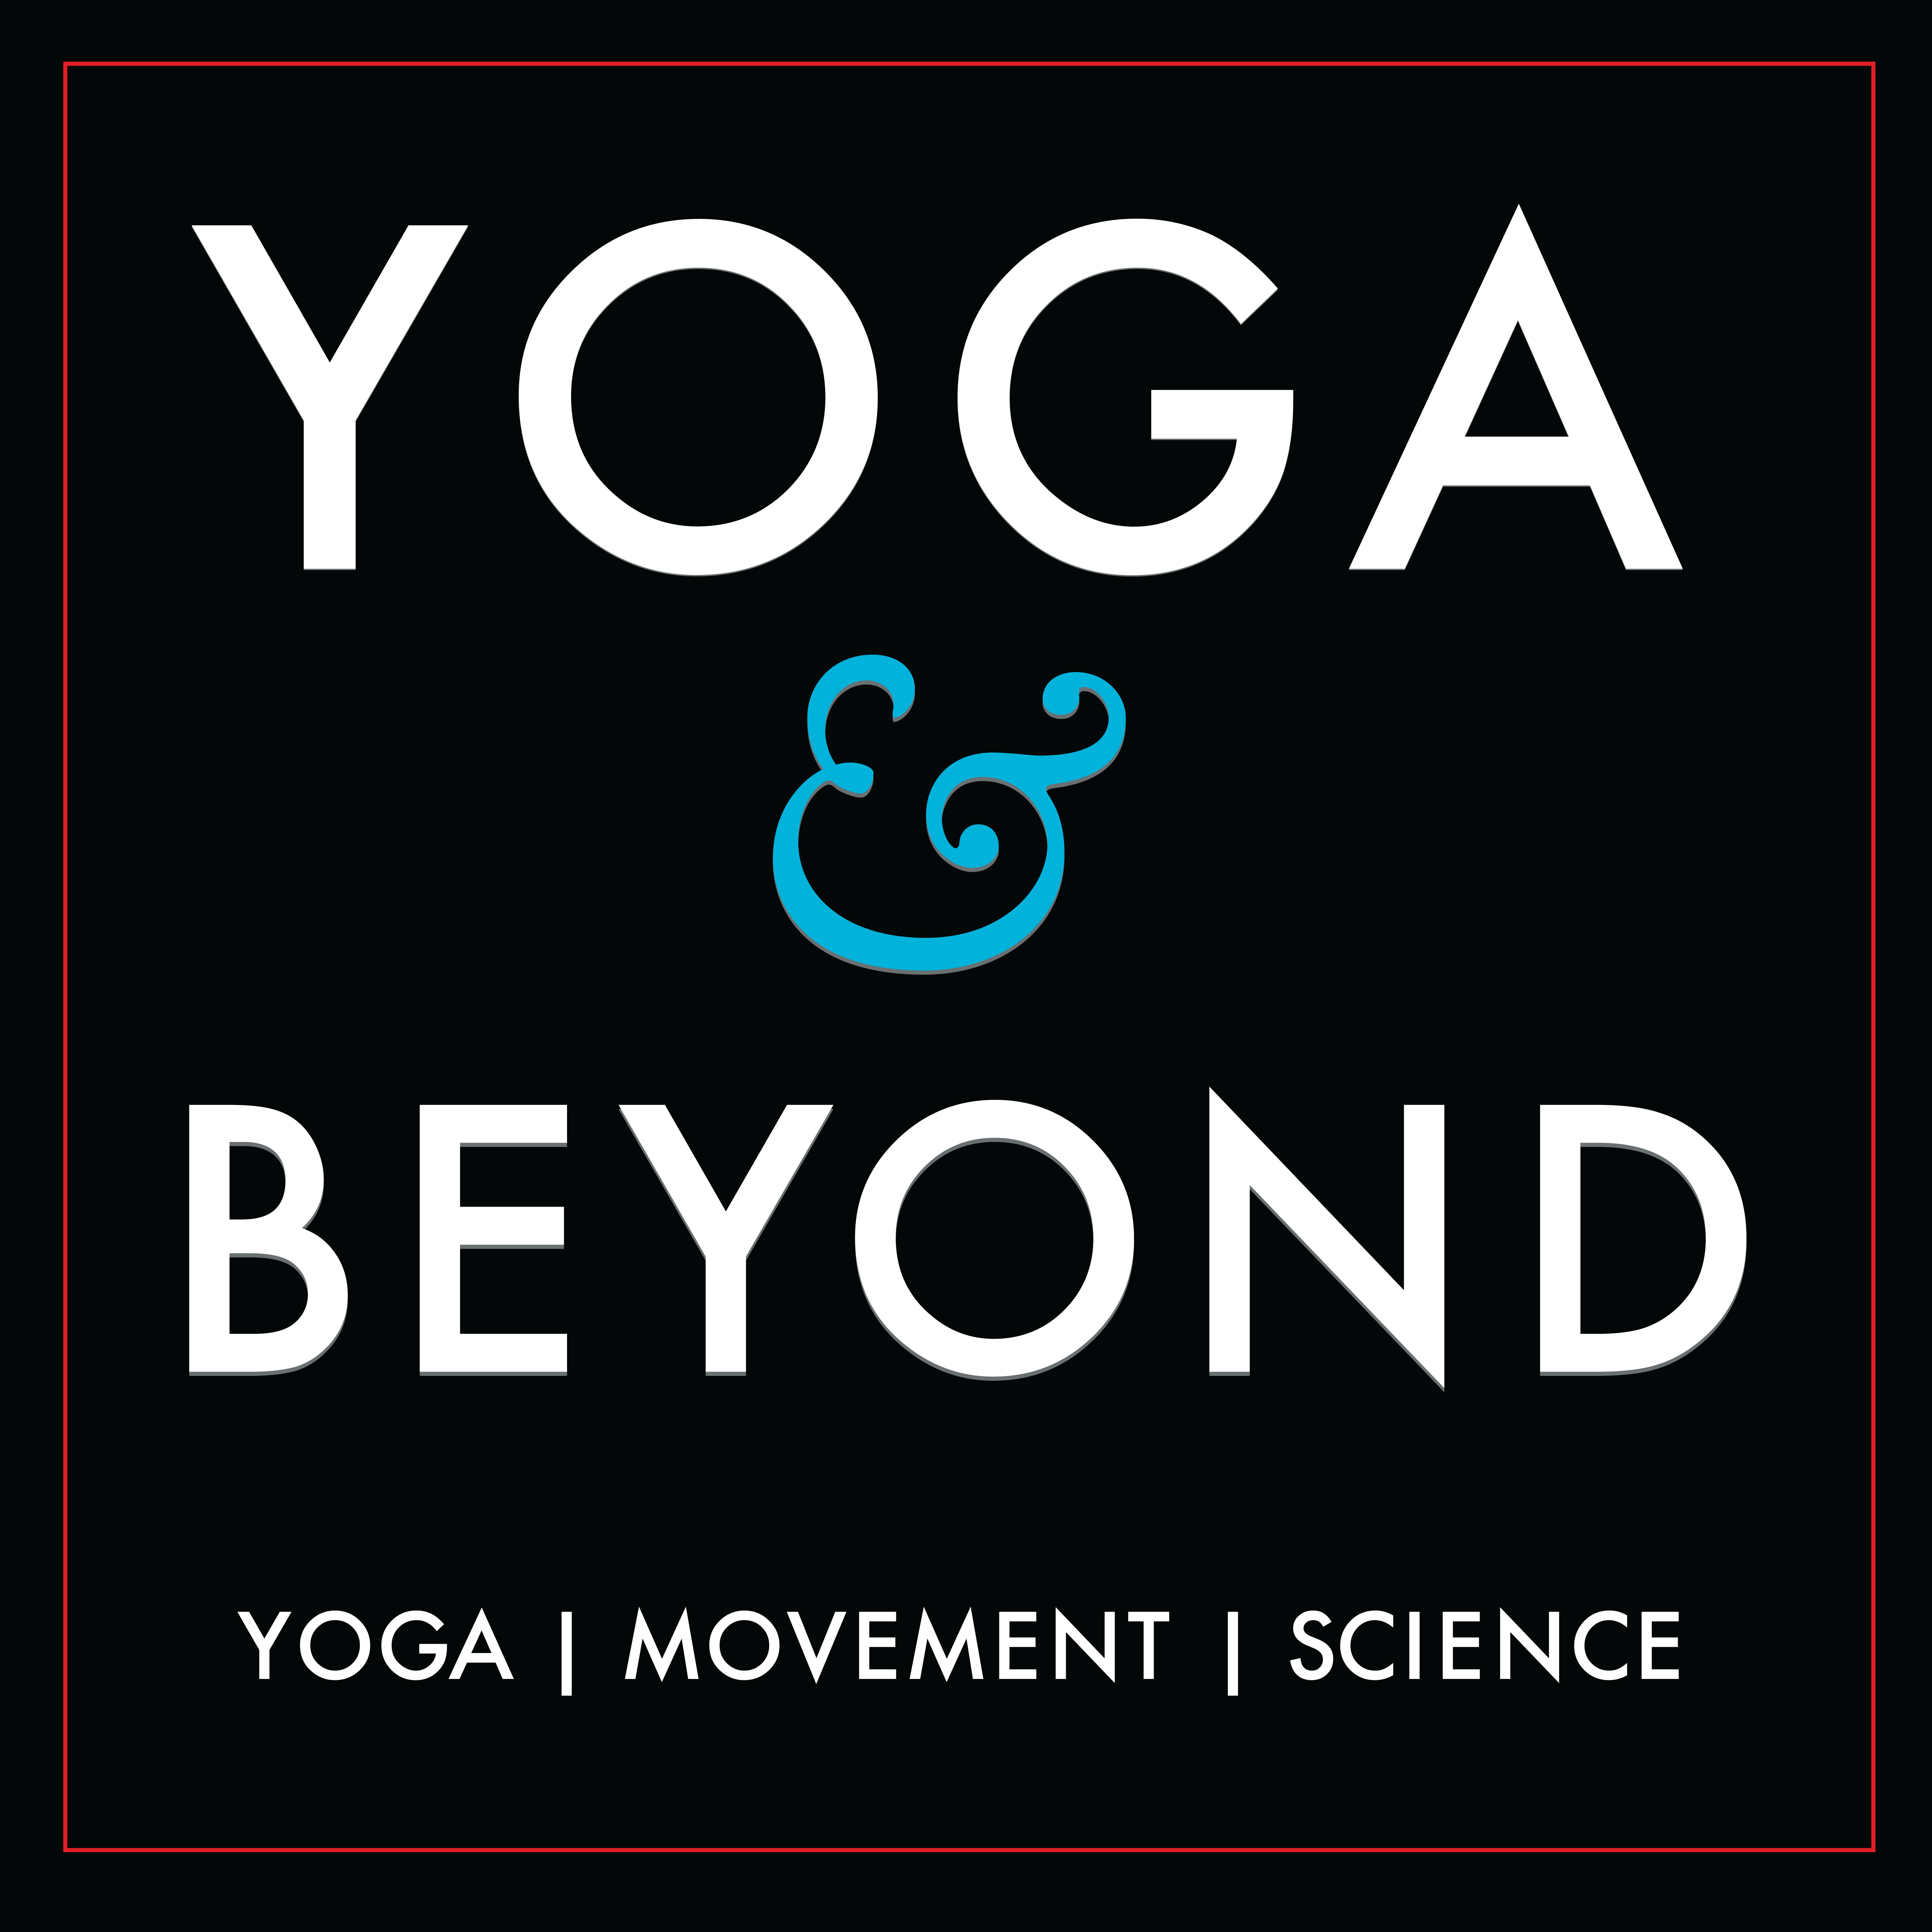 Yoga & Beyond | The Yoga and Movement Science Podcast logo